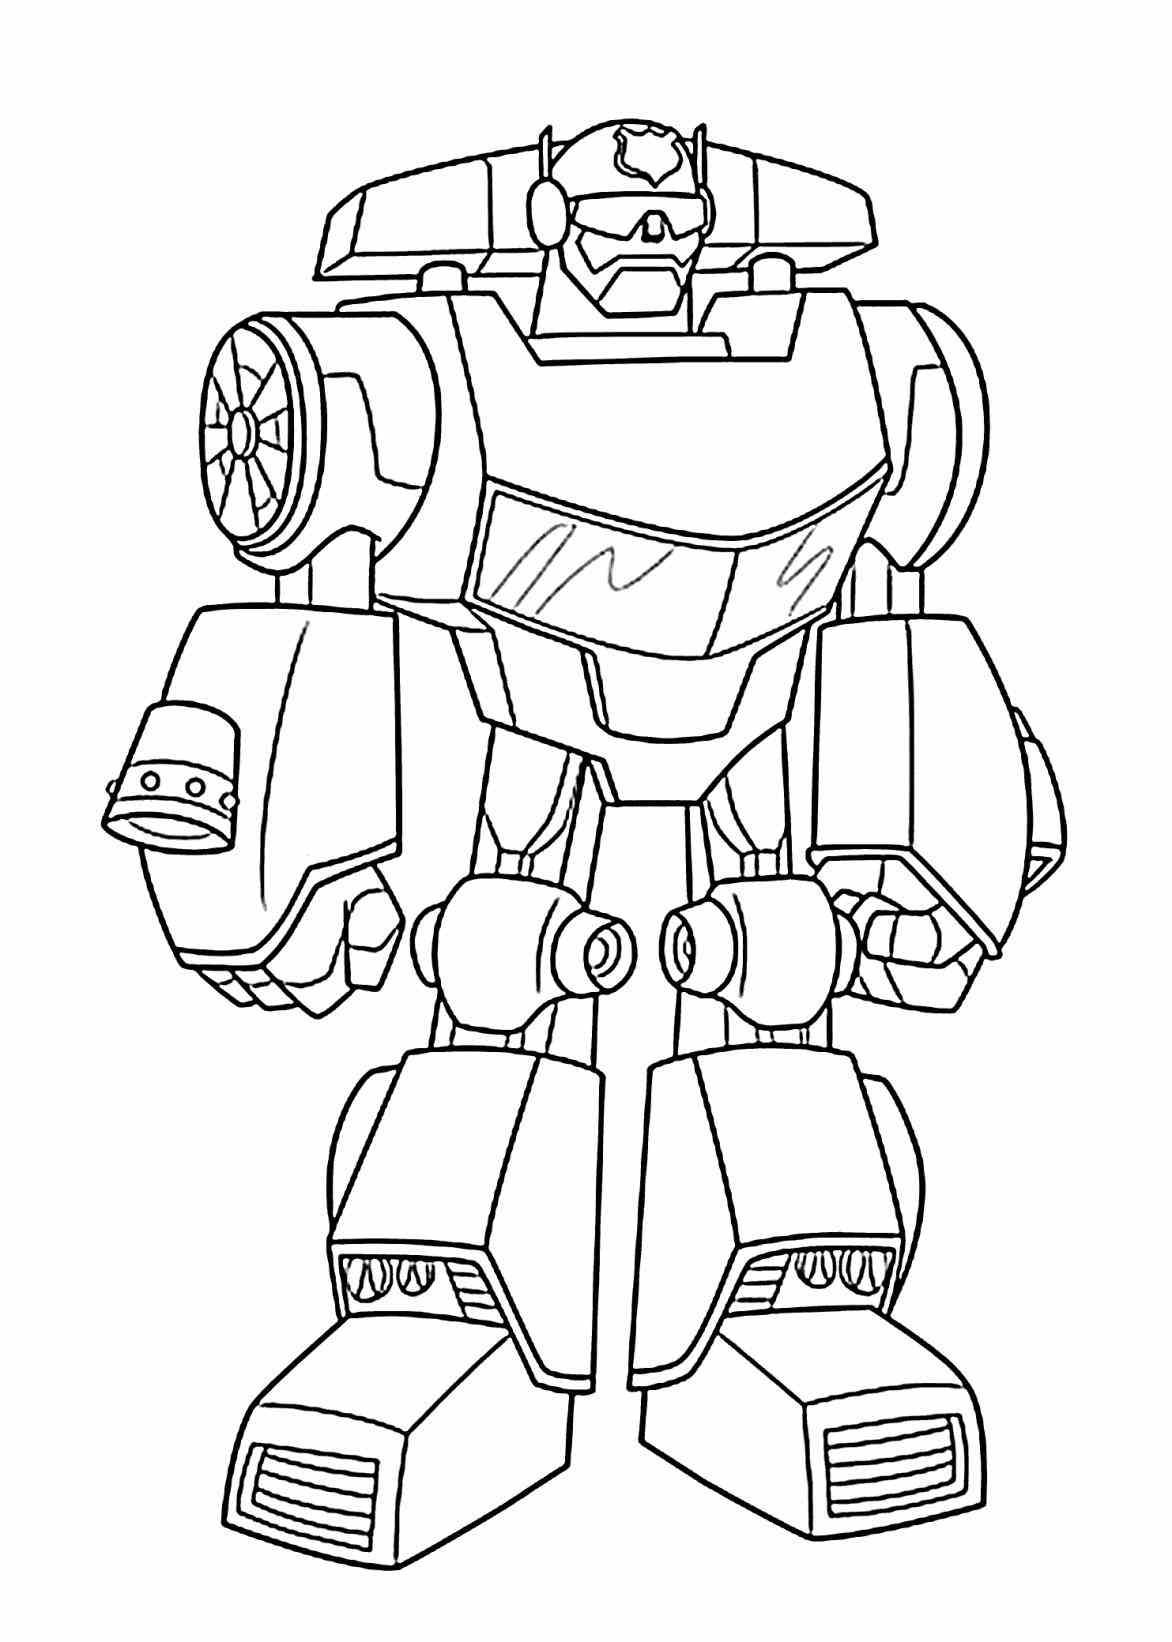 Bumble Bee Coloring Pages Transformers Bumblebee Page With Pictures Grig3 Or Transformers Coloring Pages Rescue Bots Birthday Transformers Rescue Bots Birthday